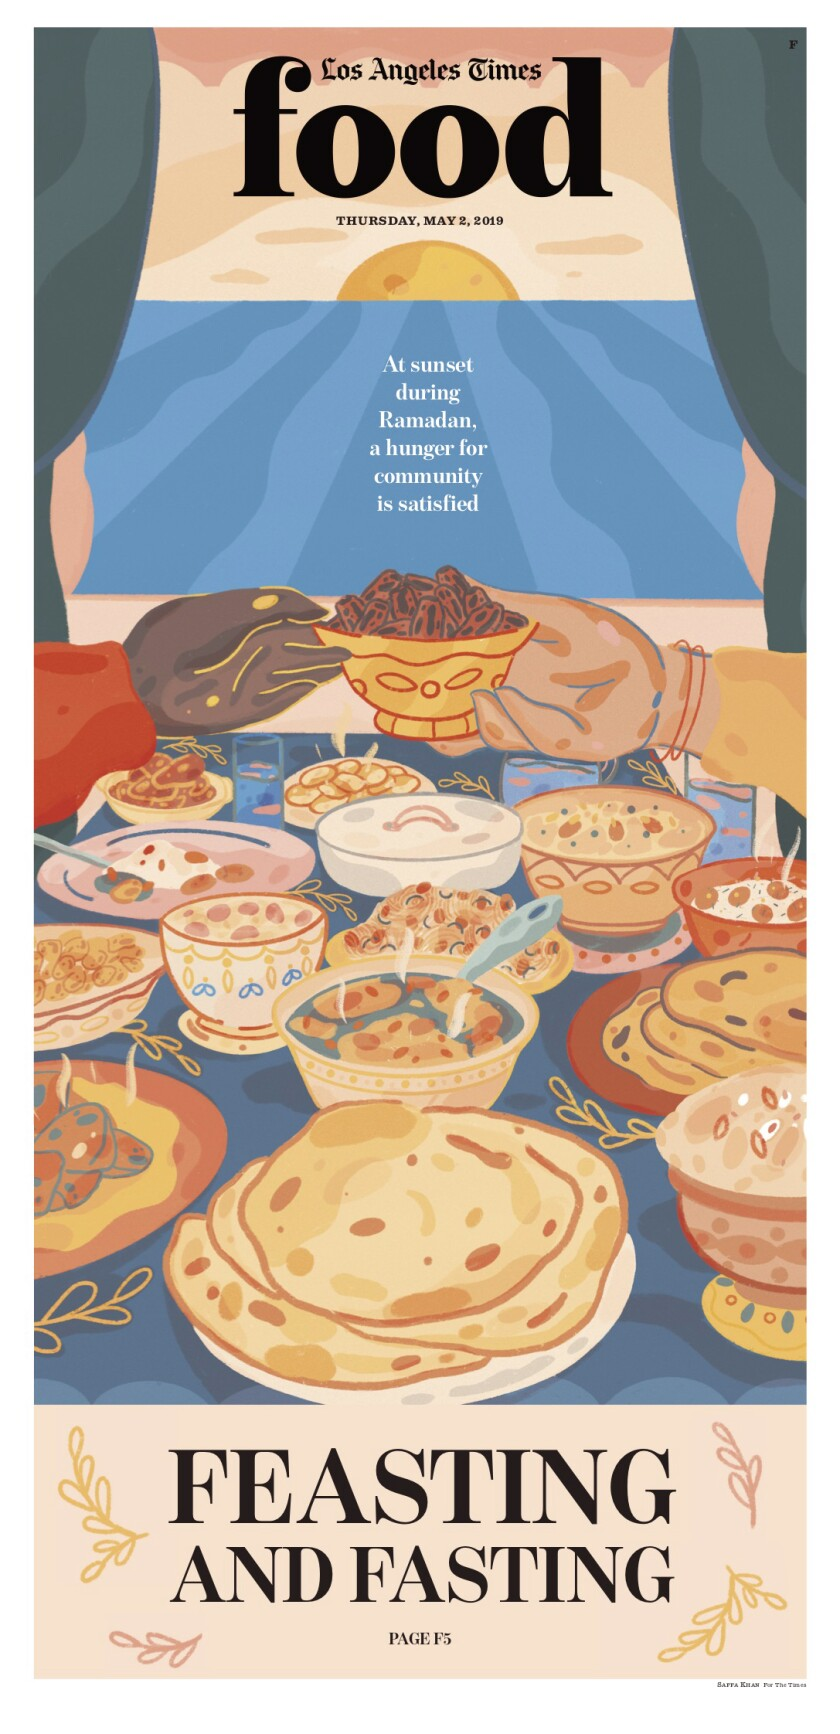 Los Angeles Times Food cover, May 2, 2019